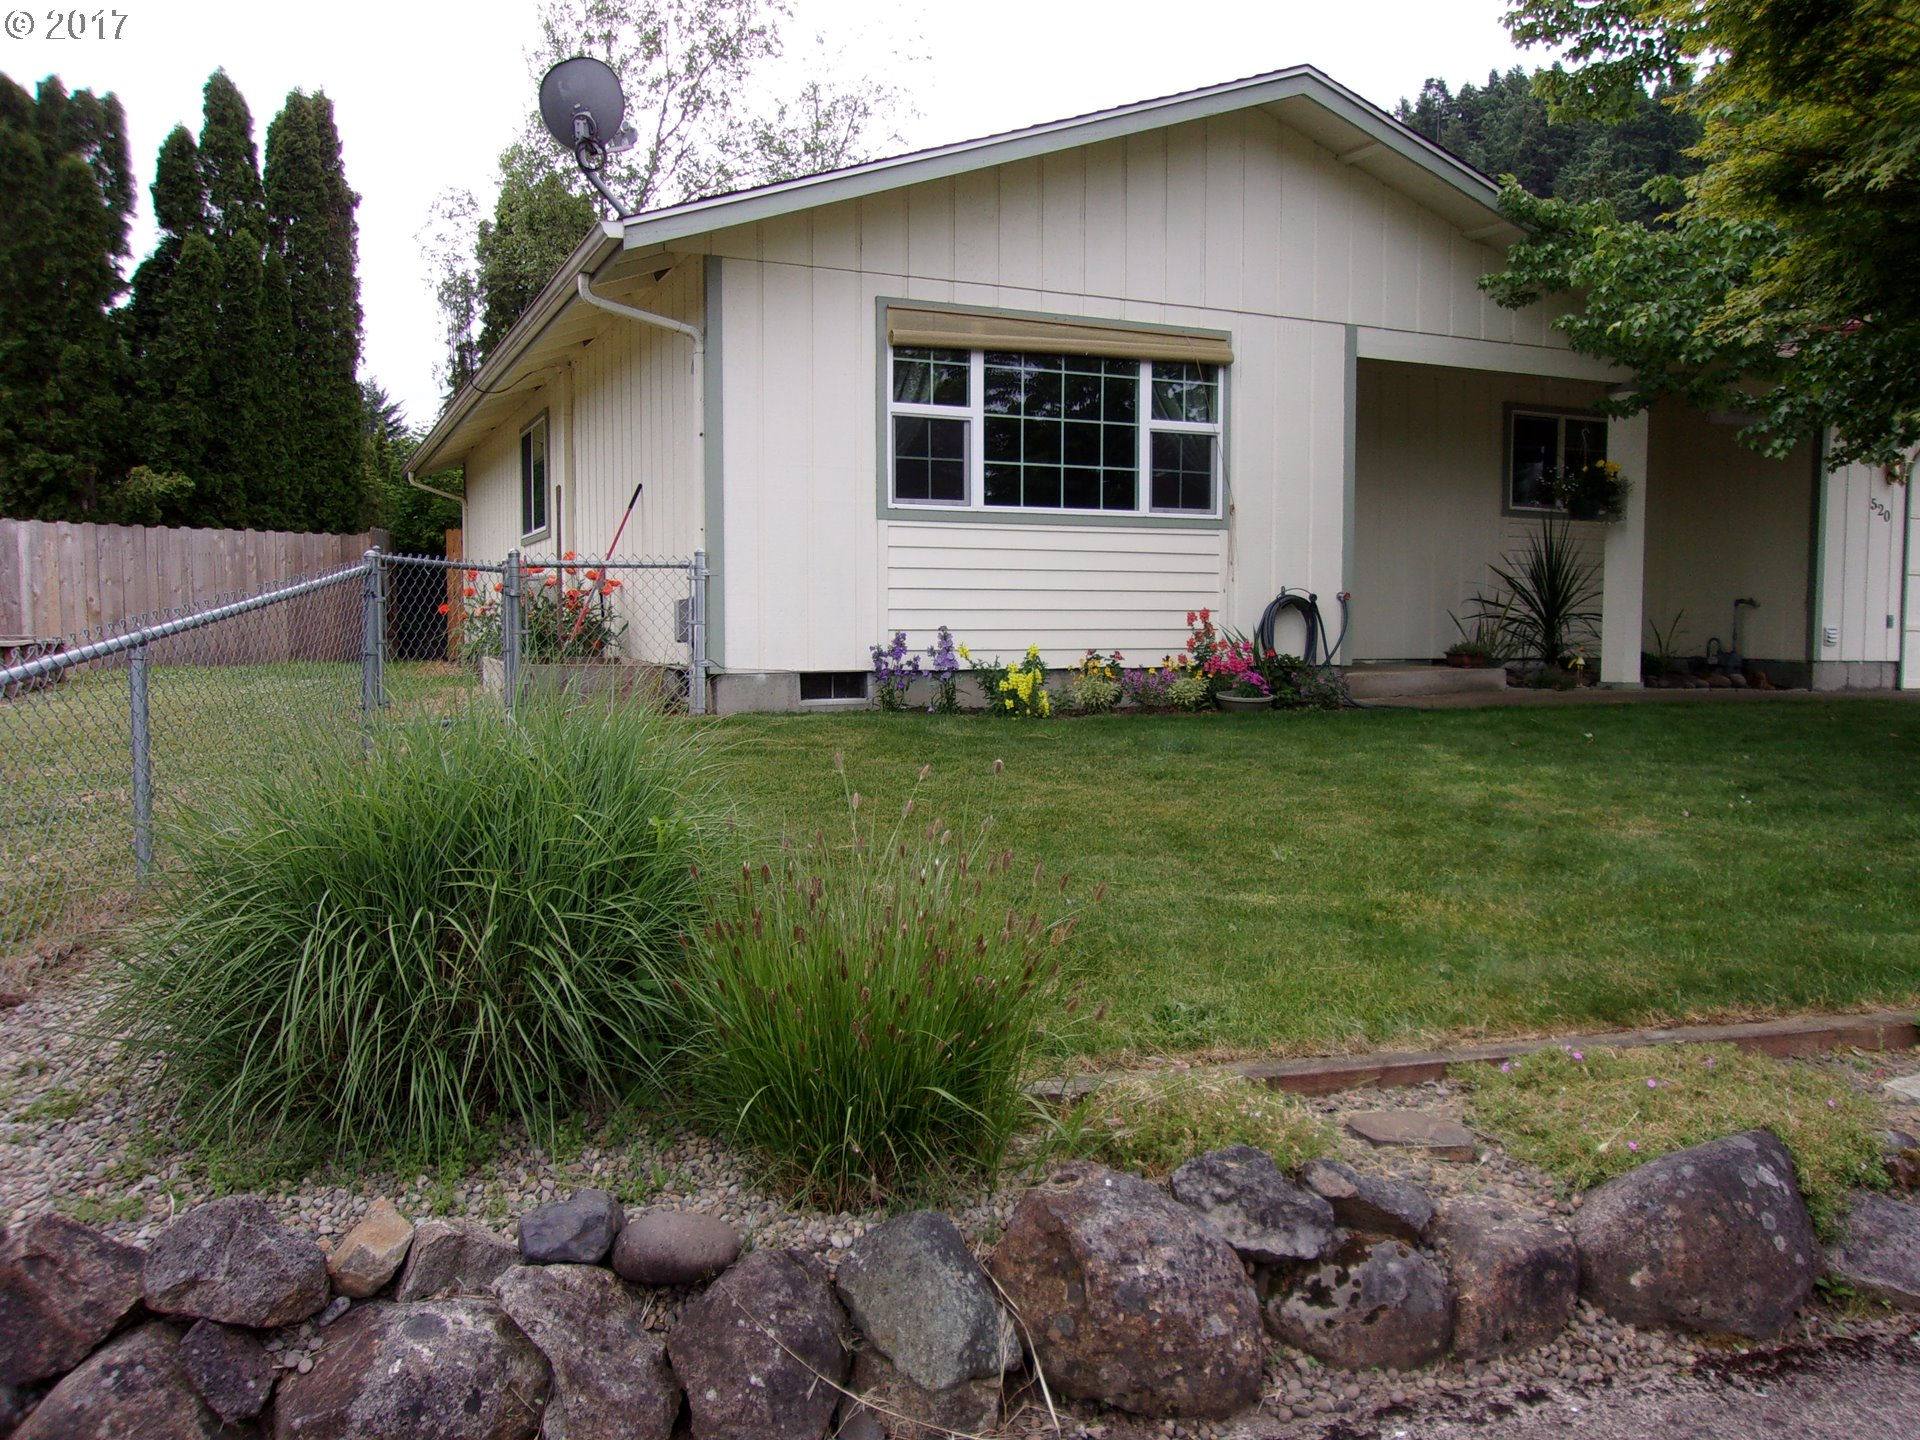 520 S 7TH ST, Creswell, OR 97426